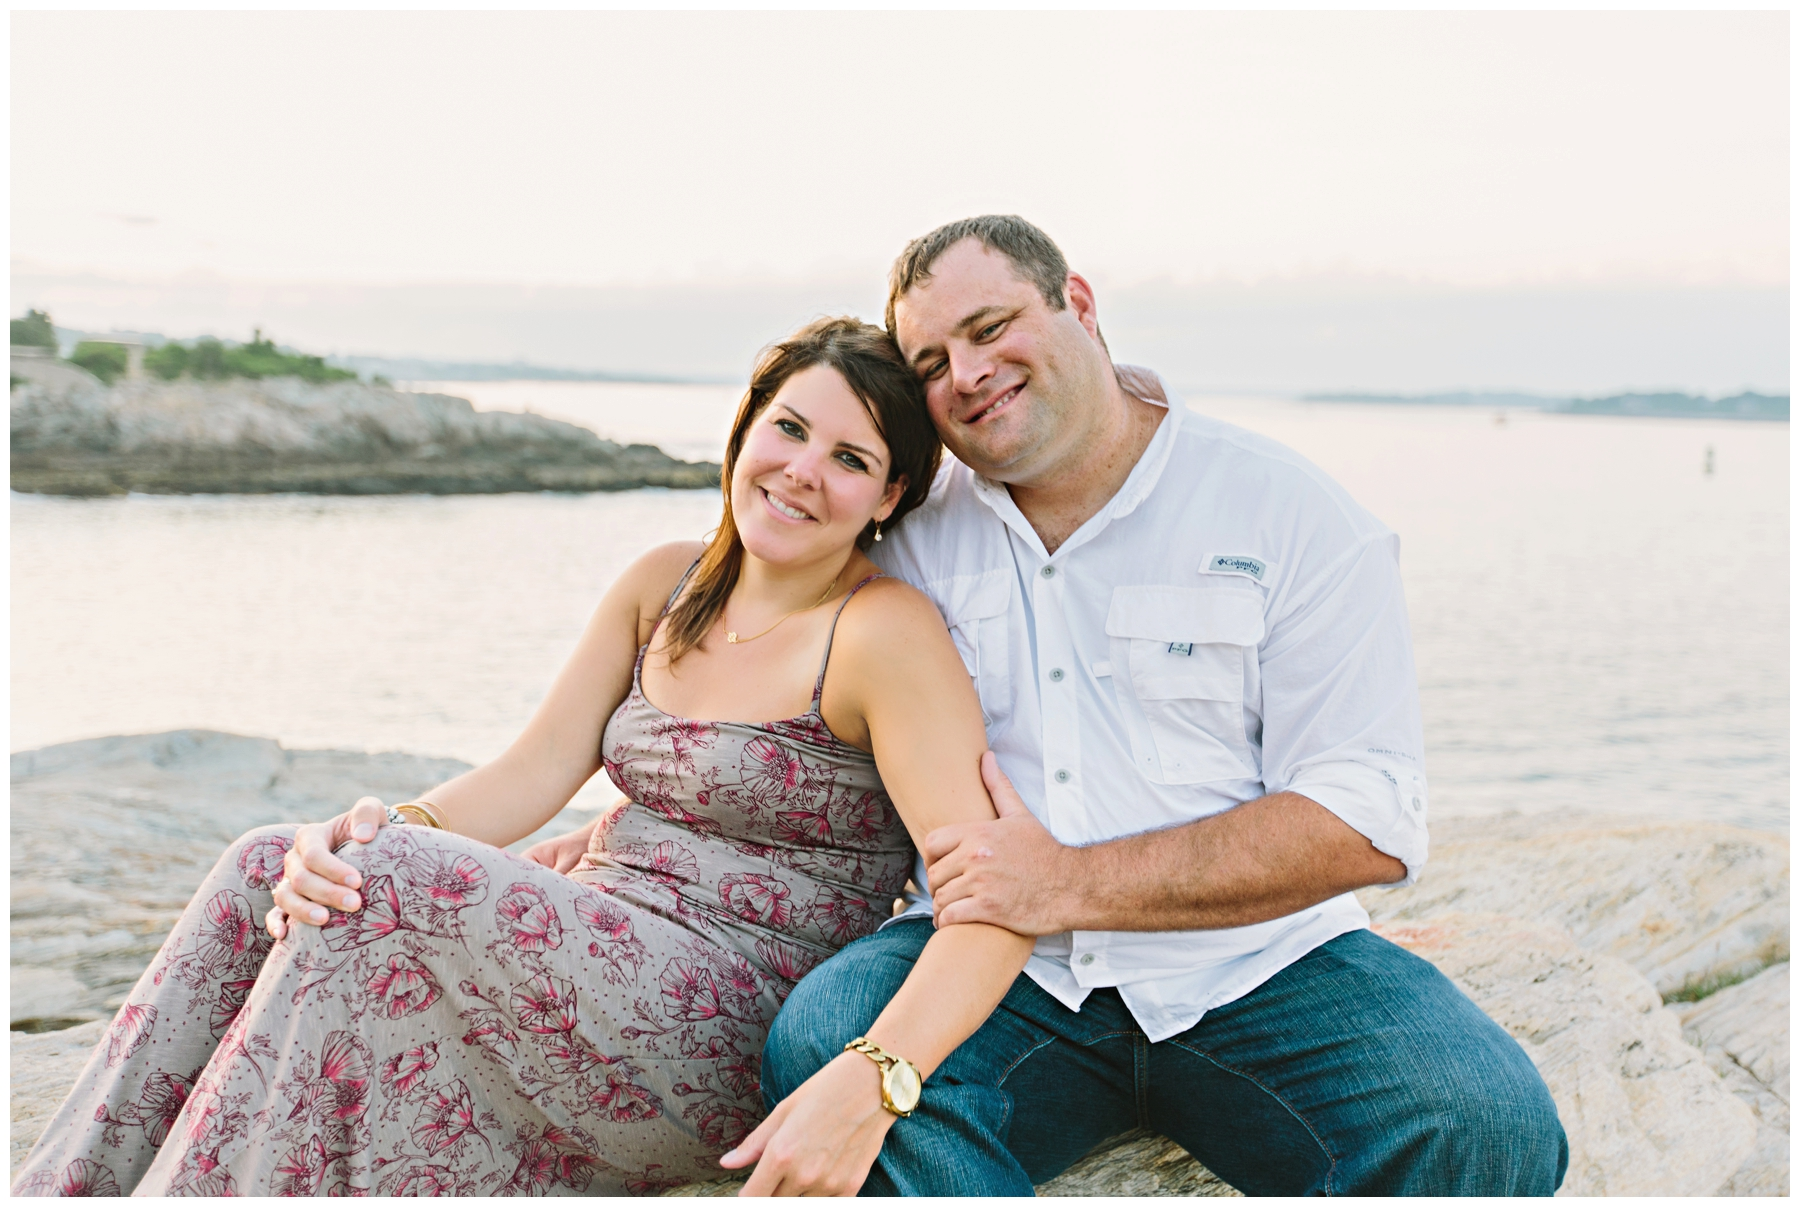 Maine_Photographer_Engagements_FortWilliams_PortlandHeadLight_lighthouse_coastal_seaside-026